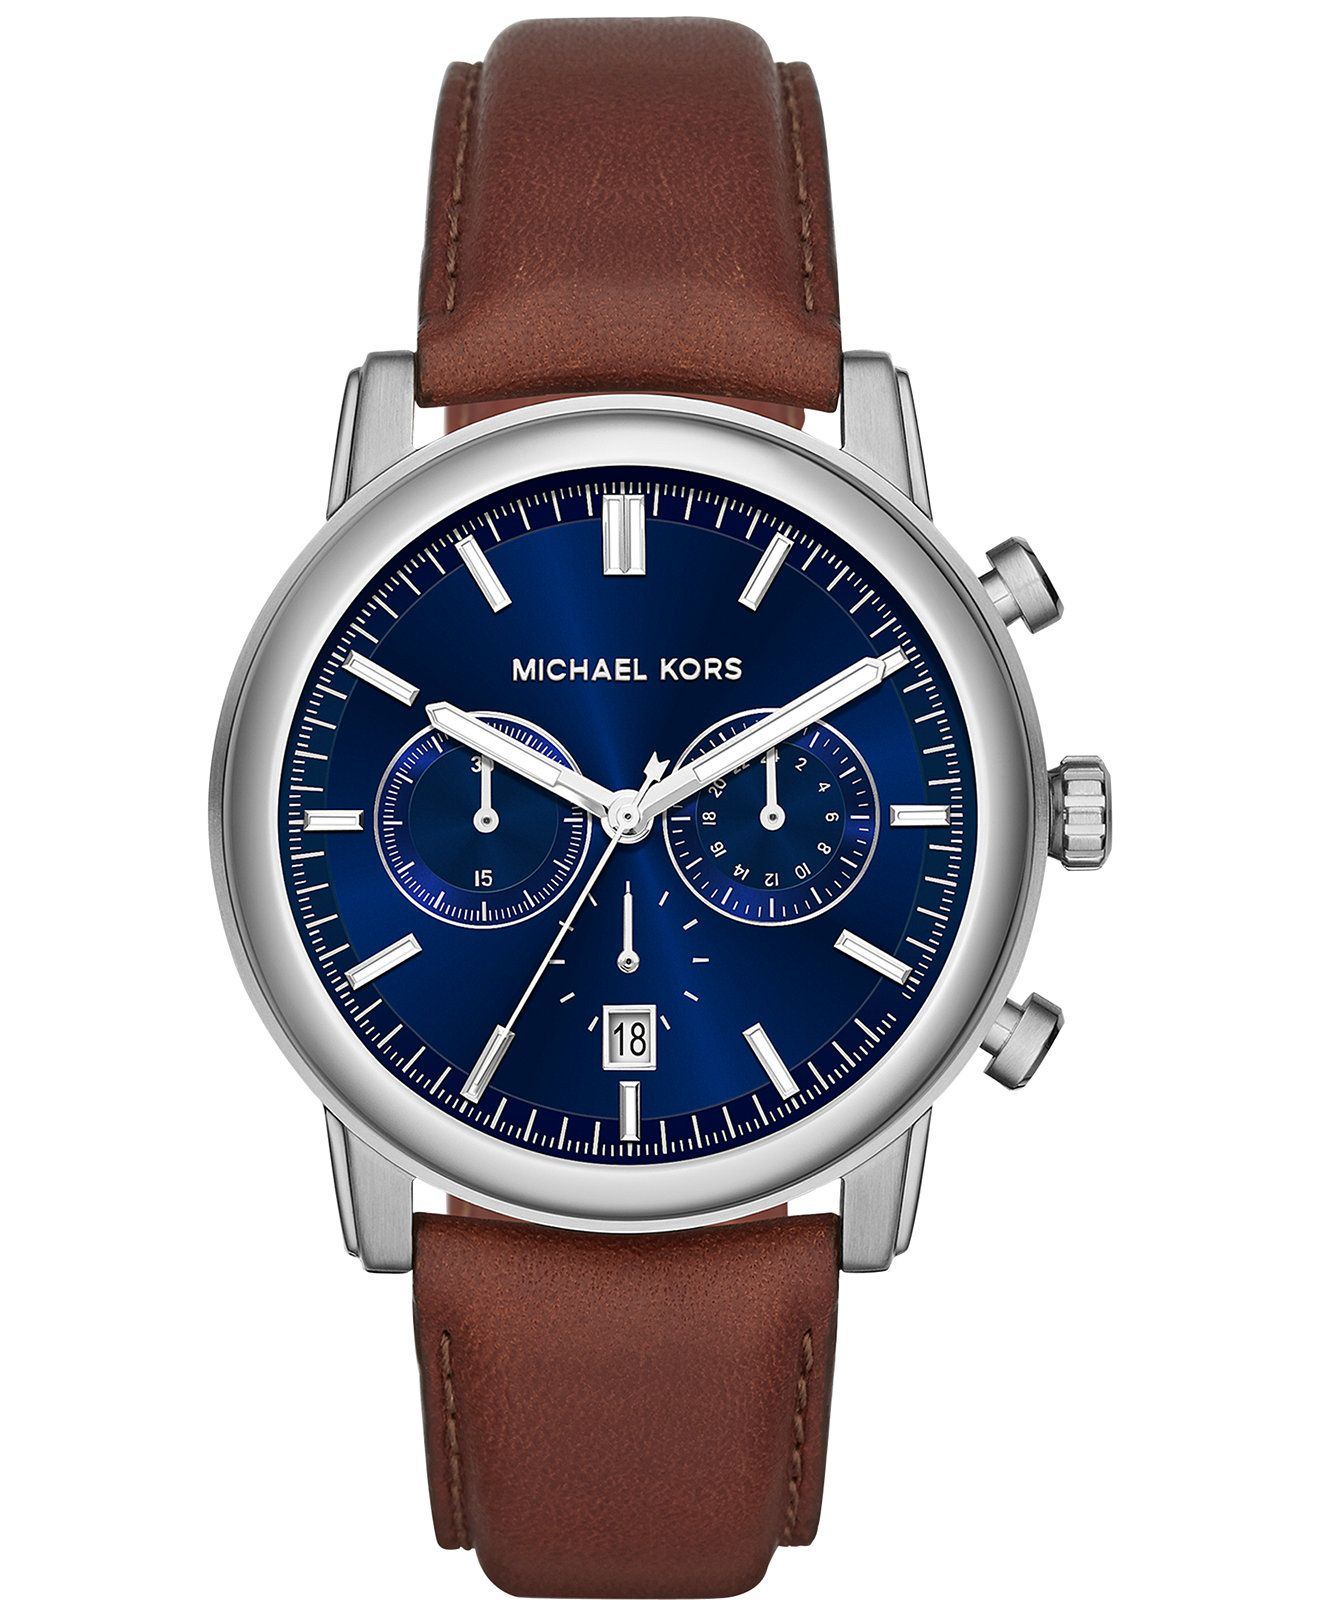 Looks - Kors Michael watches for men collection pictures video